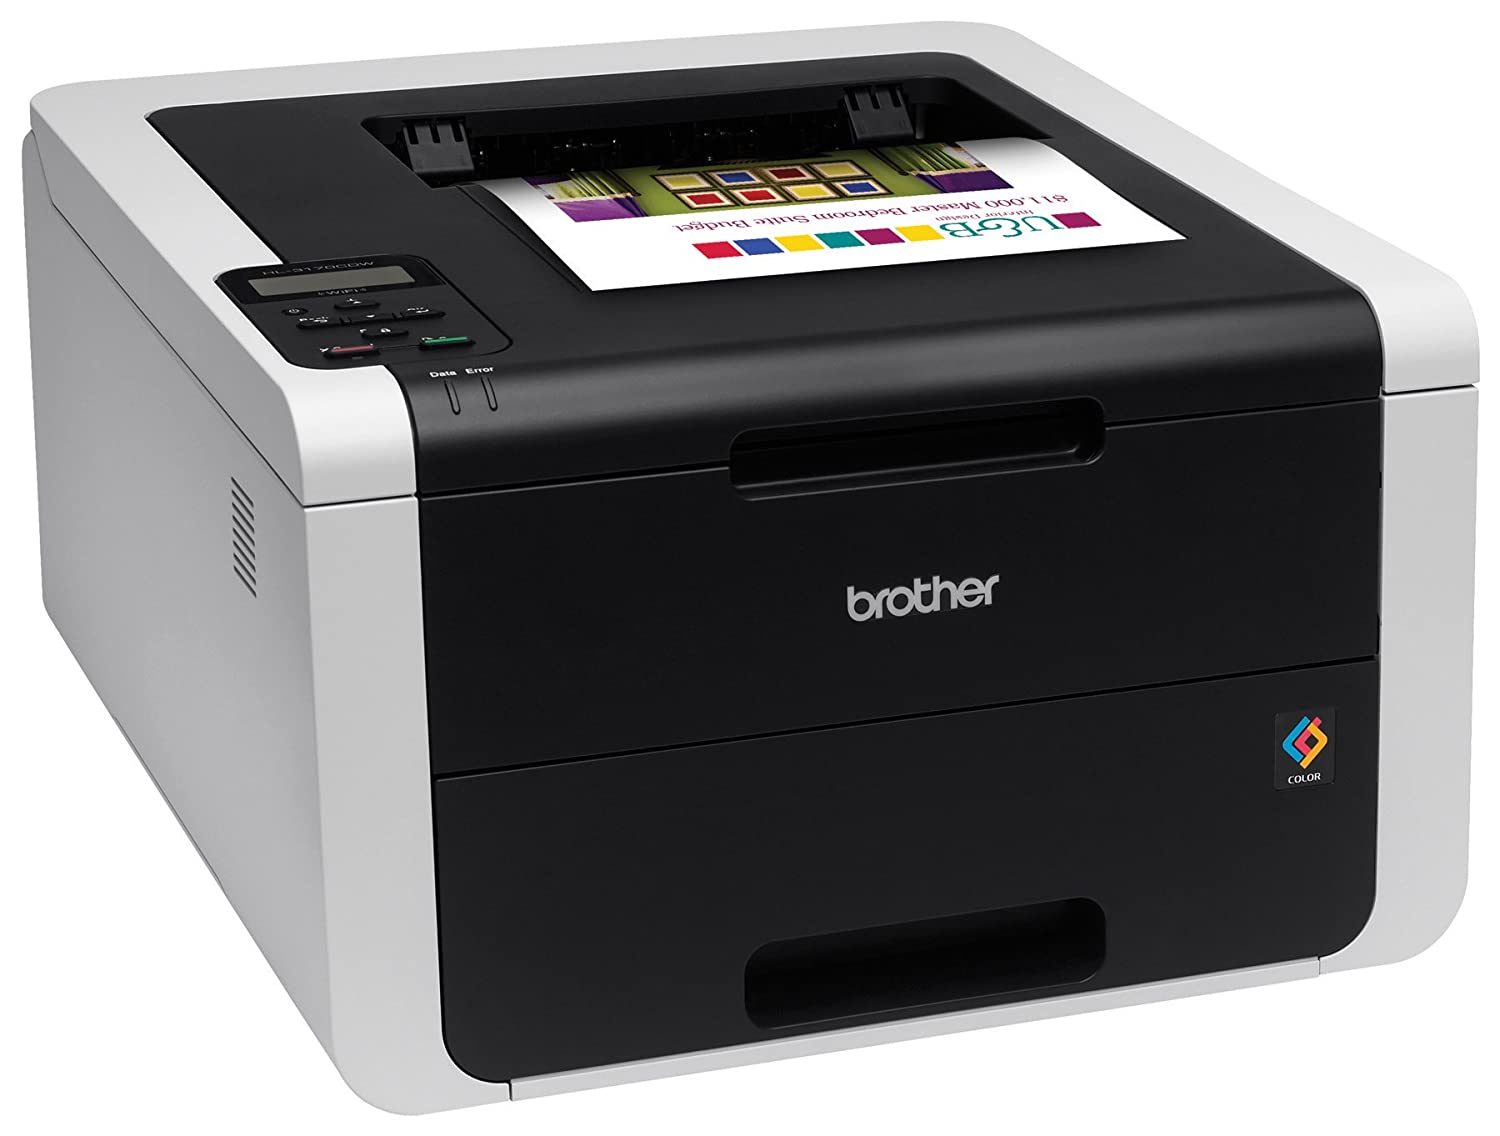 Color printing cost per page in india - Amazon Com Brother Hl 3170cdw Digital Color Printer With Wireless Networking And Duplex Amazon Dash Replenishment Enabled Office Products